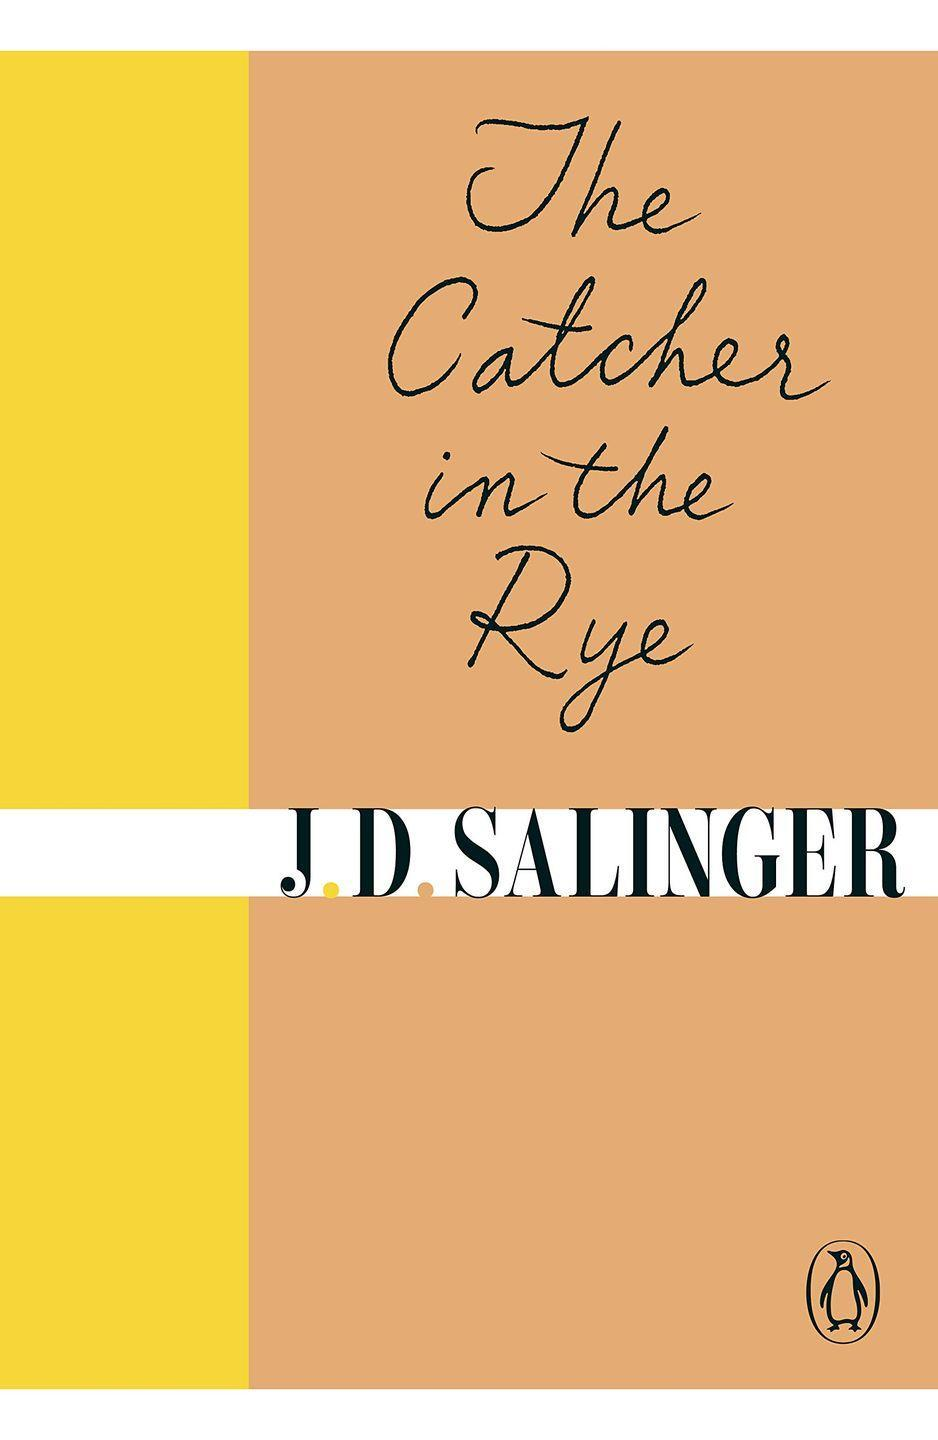 "<p>Named by Modern Library and its readers as one of the 100 best English-language novels of the 20th century, Catcher In The Rye quickly became an English class favourite - but don't let that put you off.</p><p><a class=""link rapid-noclick-resp"" href=""https://www.amazon.co.uk/Catcher-Rye-J-D-Salinger/dp/0241950430/ref=sr_1_1?crid=ZPC4FA1JQC39&dchild=1&keywords=the+catcher+in+the+rye&qid=1586957141&sprefix=the+catcher%2Caps%2C191&sr=8-1&tag=hearstuk-yahoo-21&ascsubtag=%5Bartid%7C1921.g.32141605%5Bsrc%7Cyahoo-uk"" rel=""nofollow noopener"" target=""_blank"" data-ylk=""slk:SHOP NOW"">SHOP NOW</a></p>"